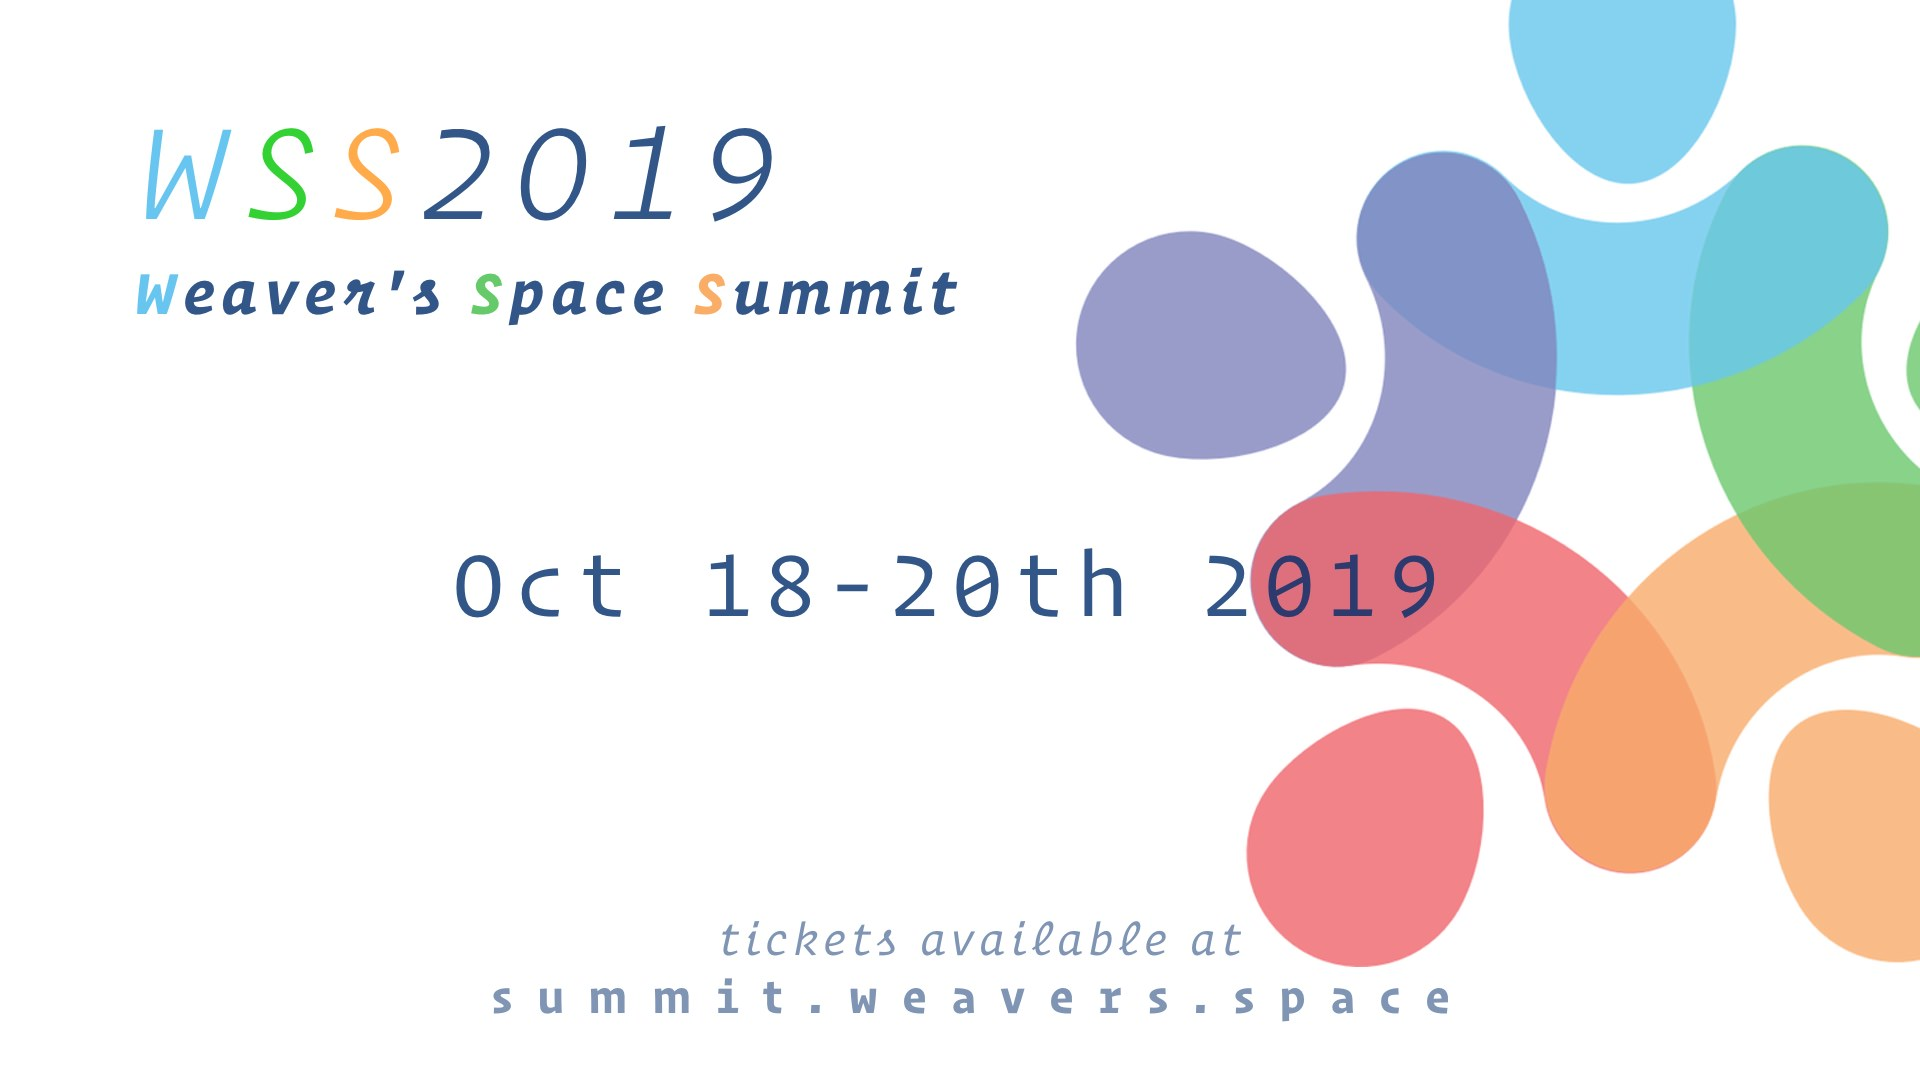 8 Pst To Aest ⭐ weaver's space summit 2019 - lets take it to the next